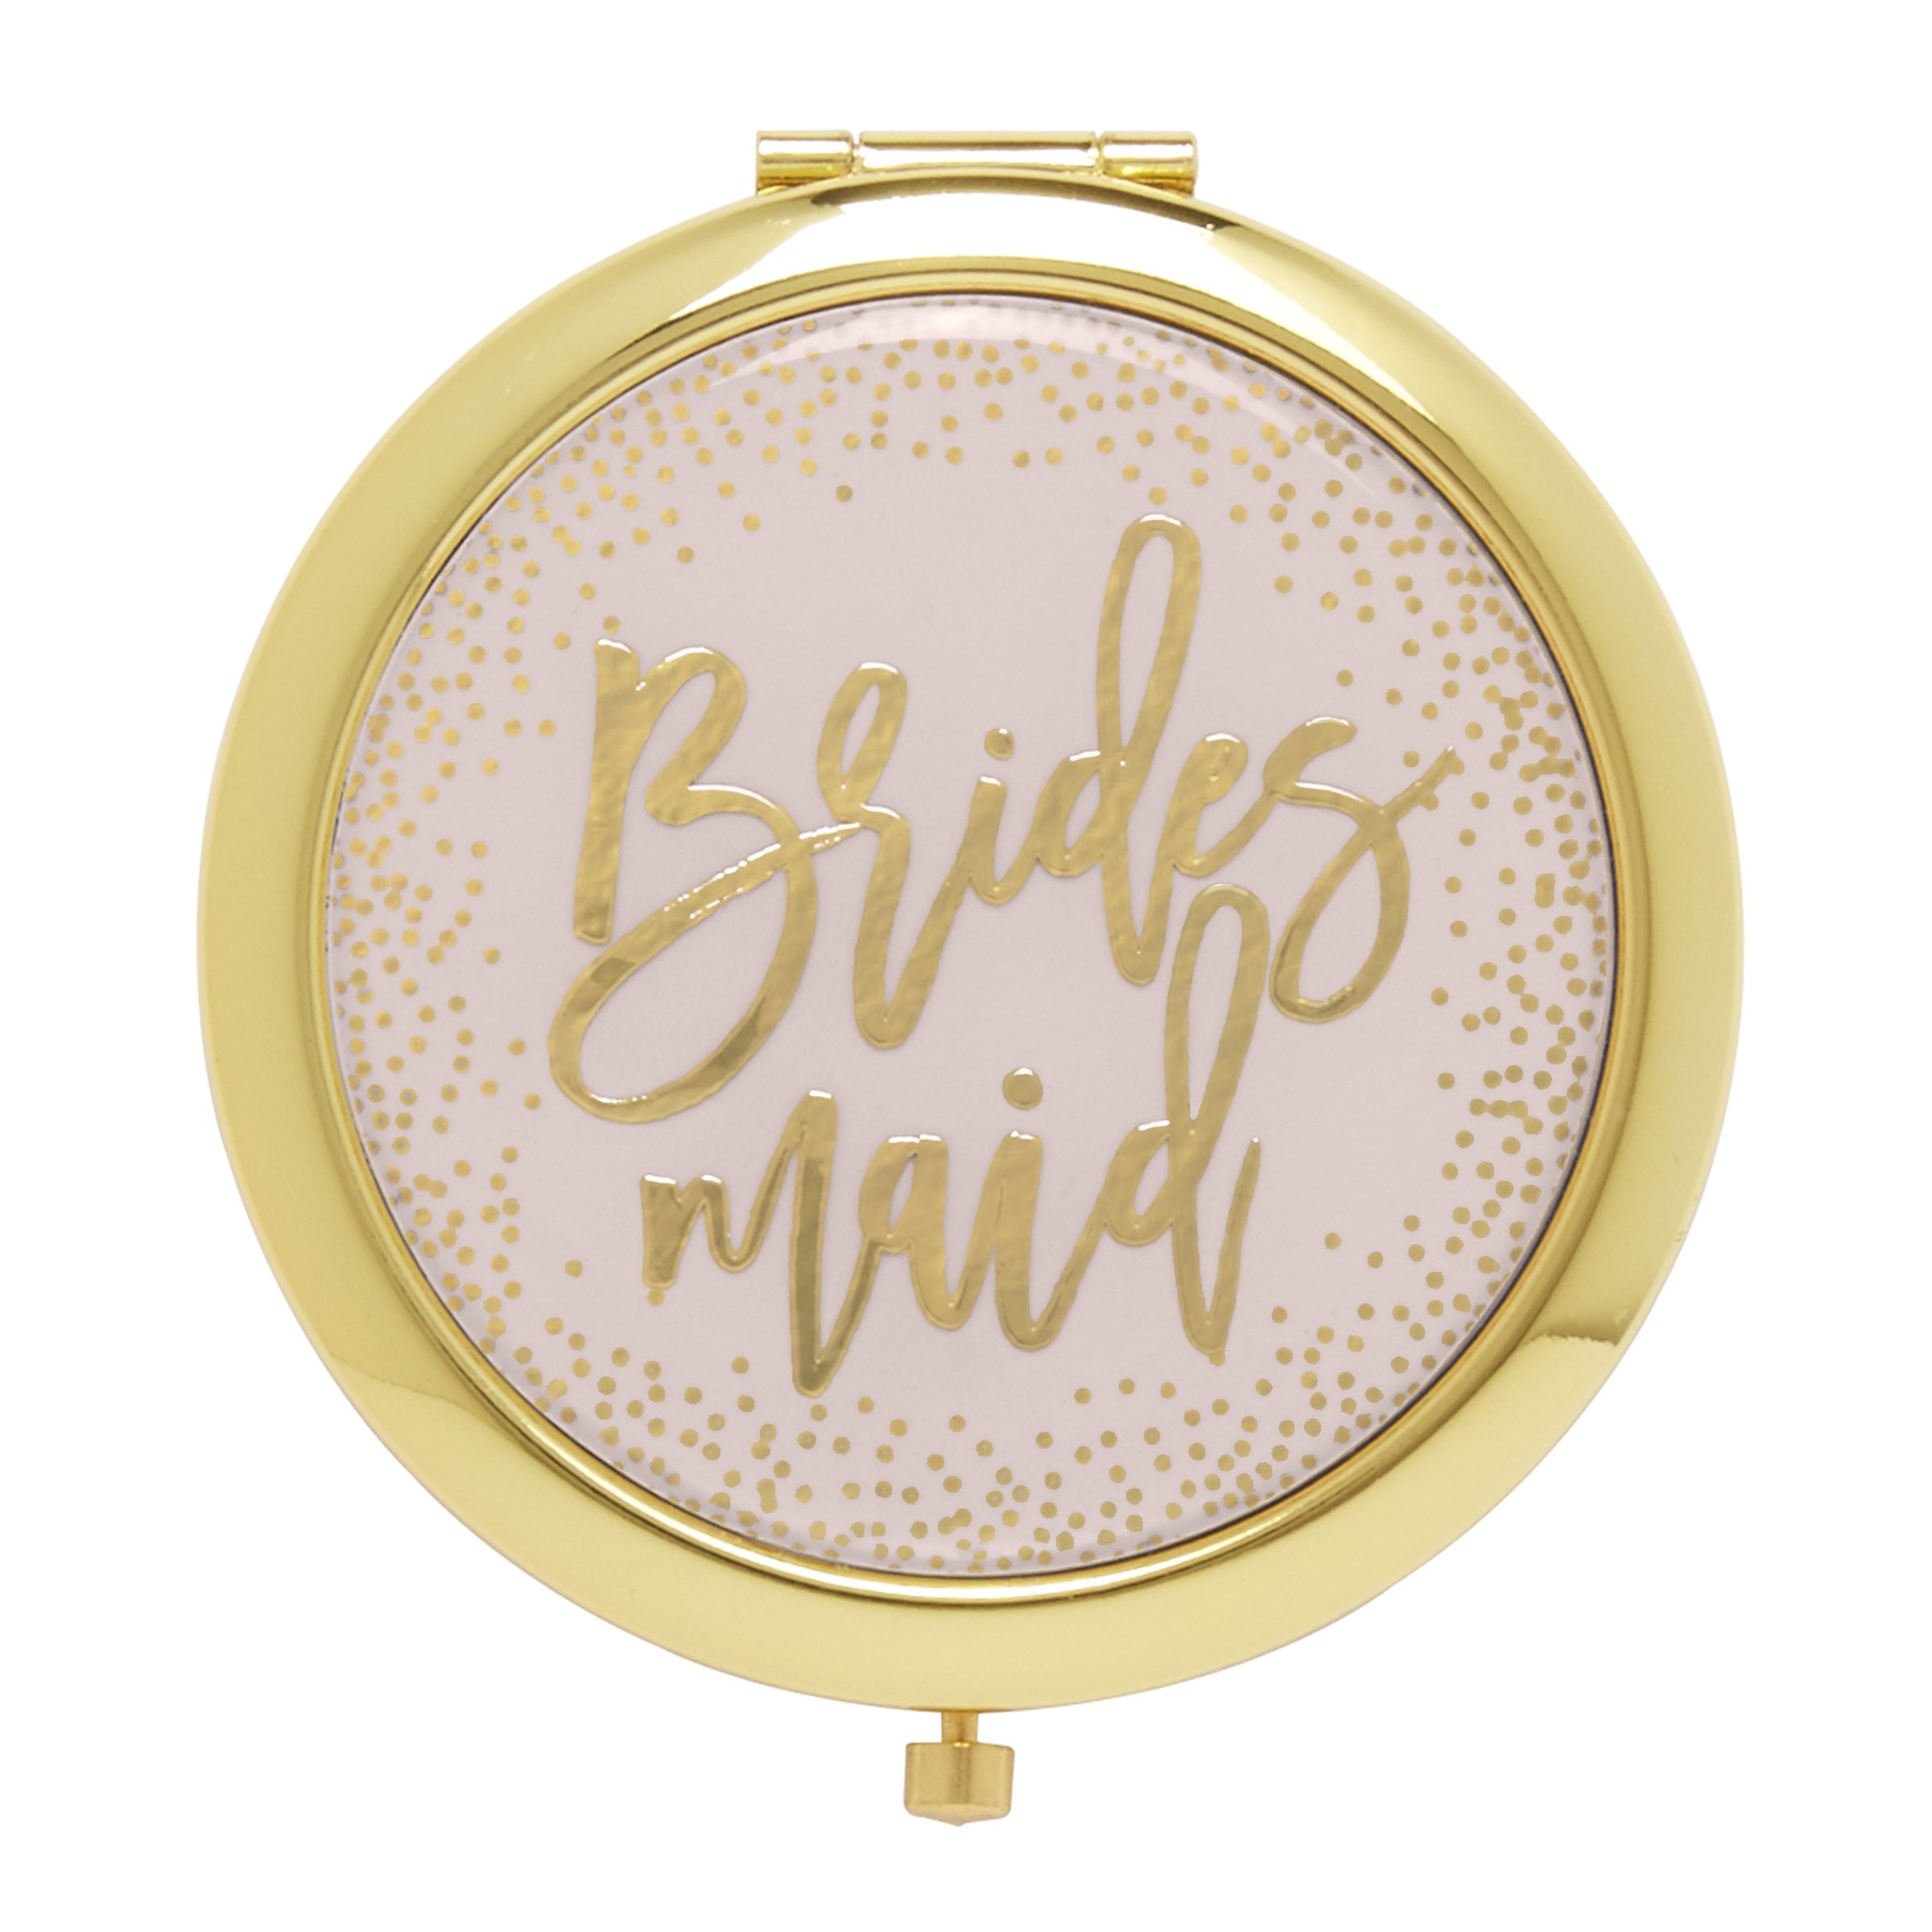 C.R. Gibson Pink and Gold Bridesmaid Pocket Compact Mirror Gift, 1 Pound